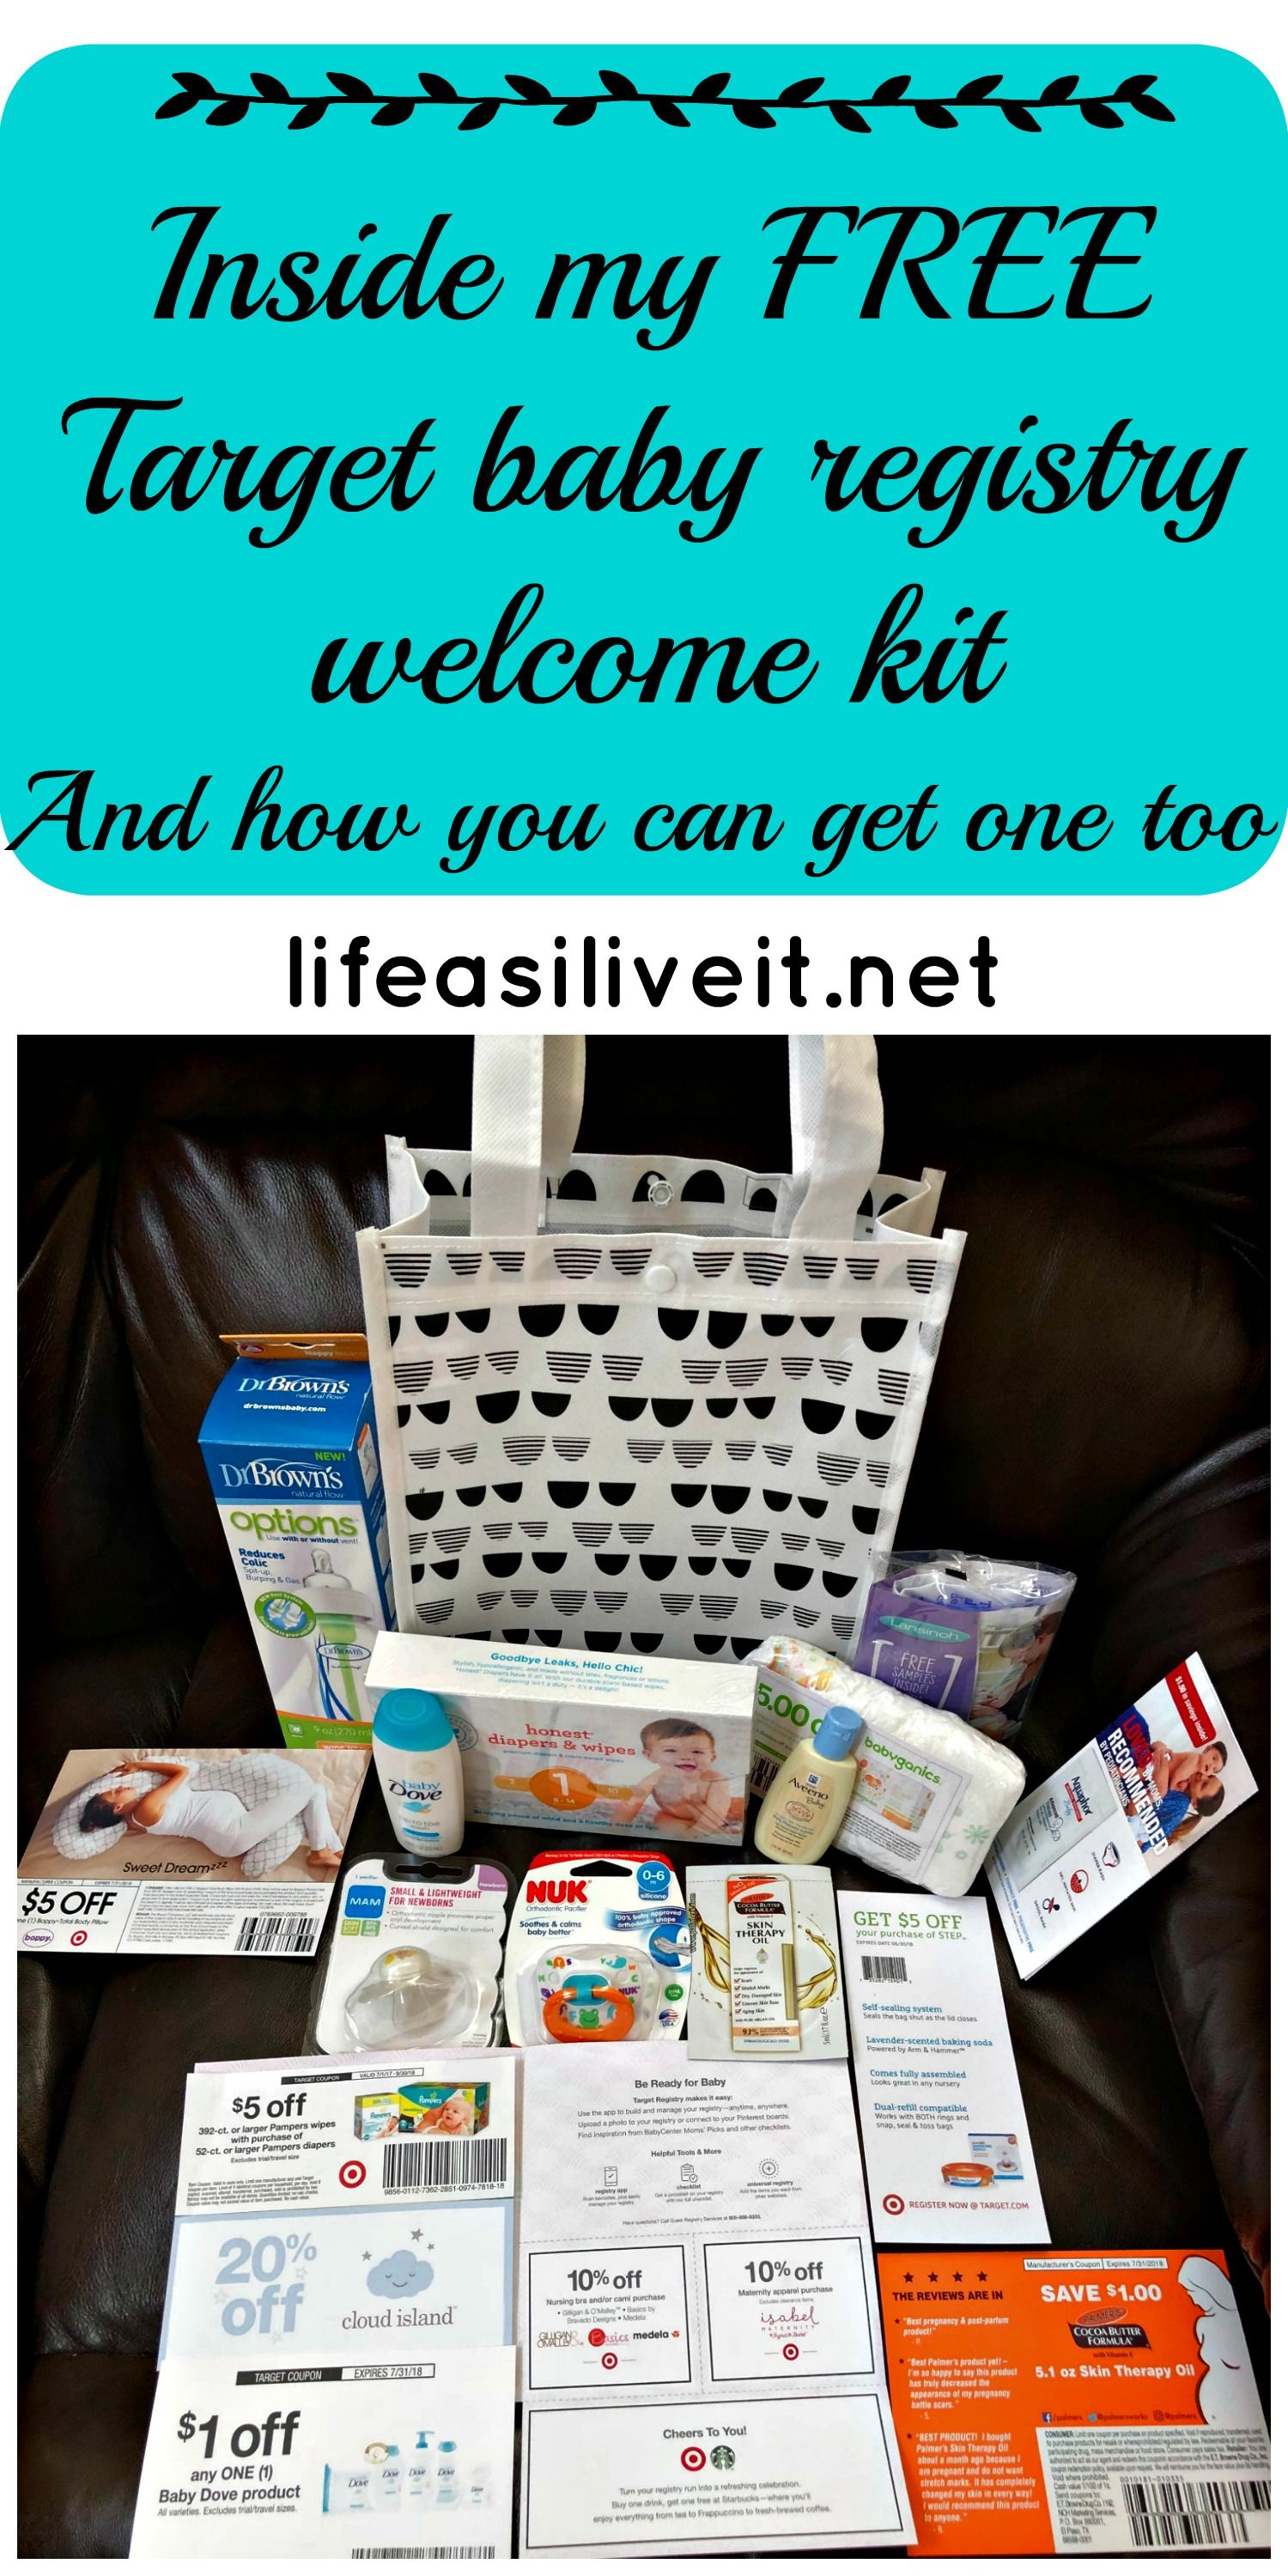 How To Get Free Baby Welcome Box From Target